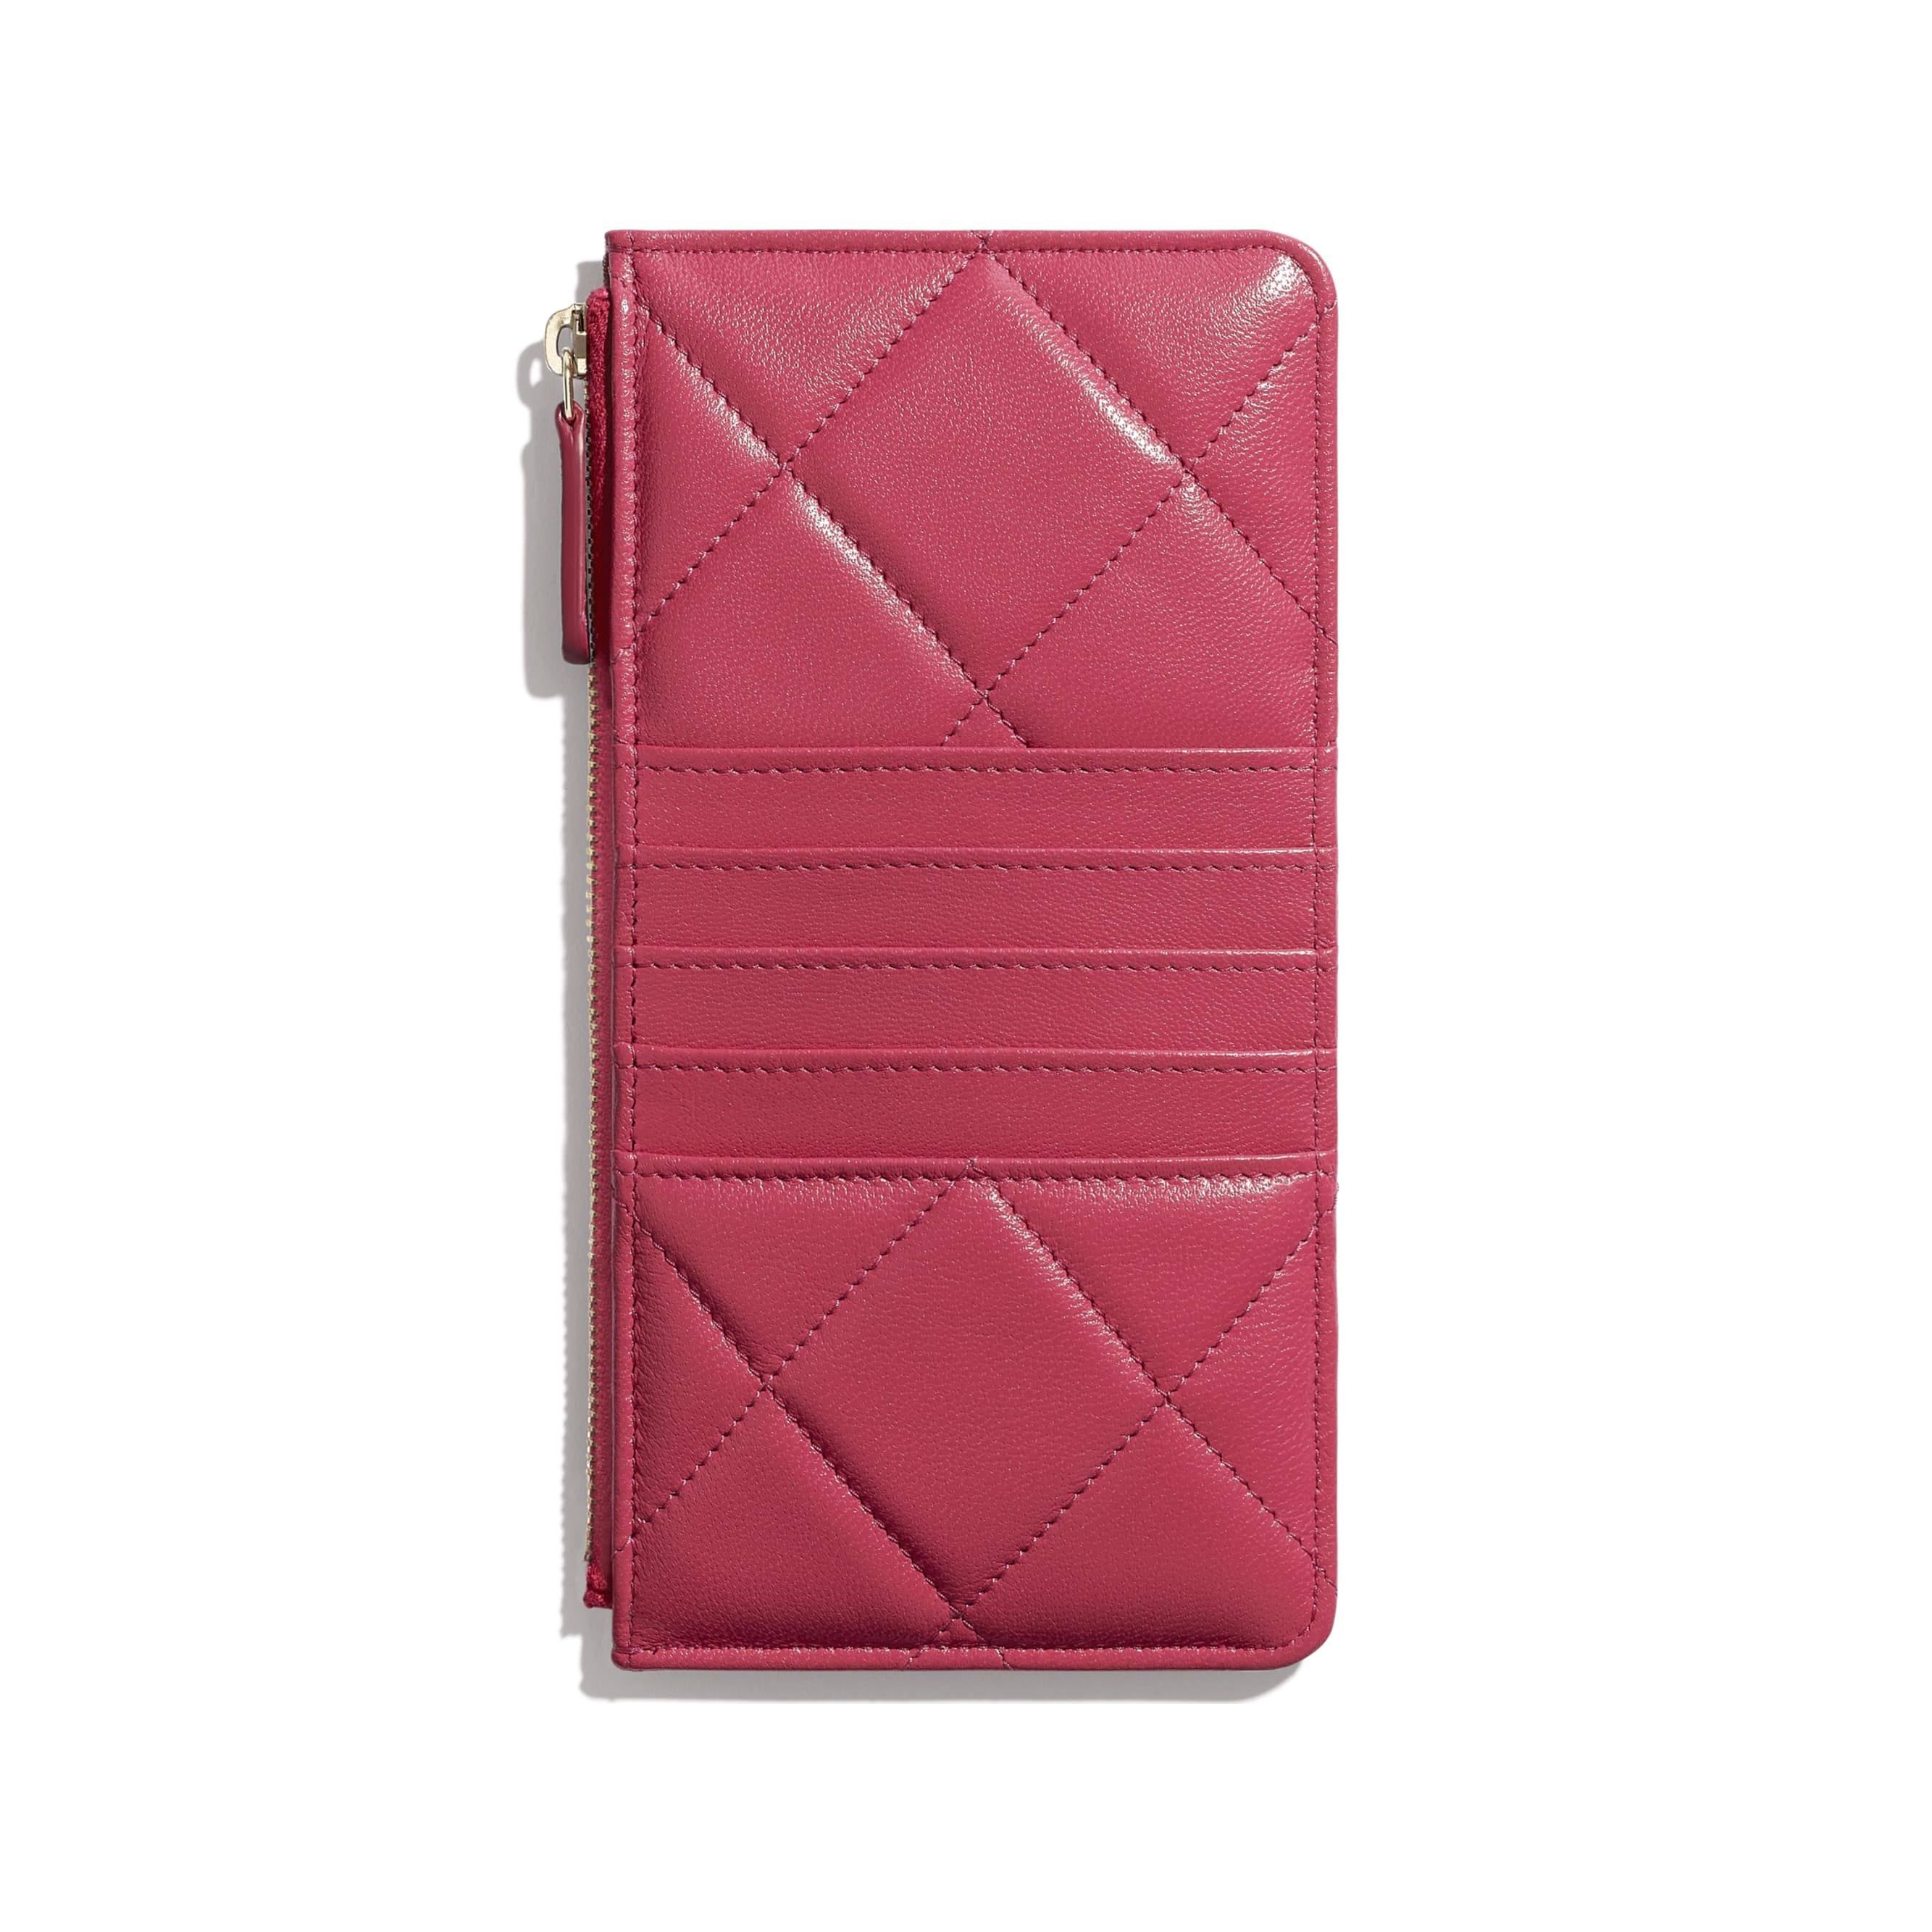 CHANEL 19 Phone & Card Holder - Dark Pink - Lambskin, Gold-Tone, Silver-Tone & Ruthenium-Finish Metal - Alternative view - see standard sized version